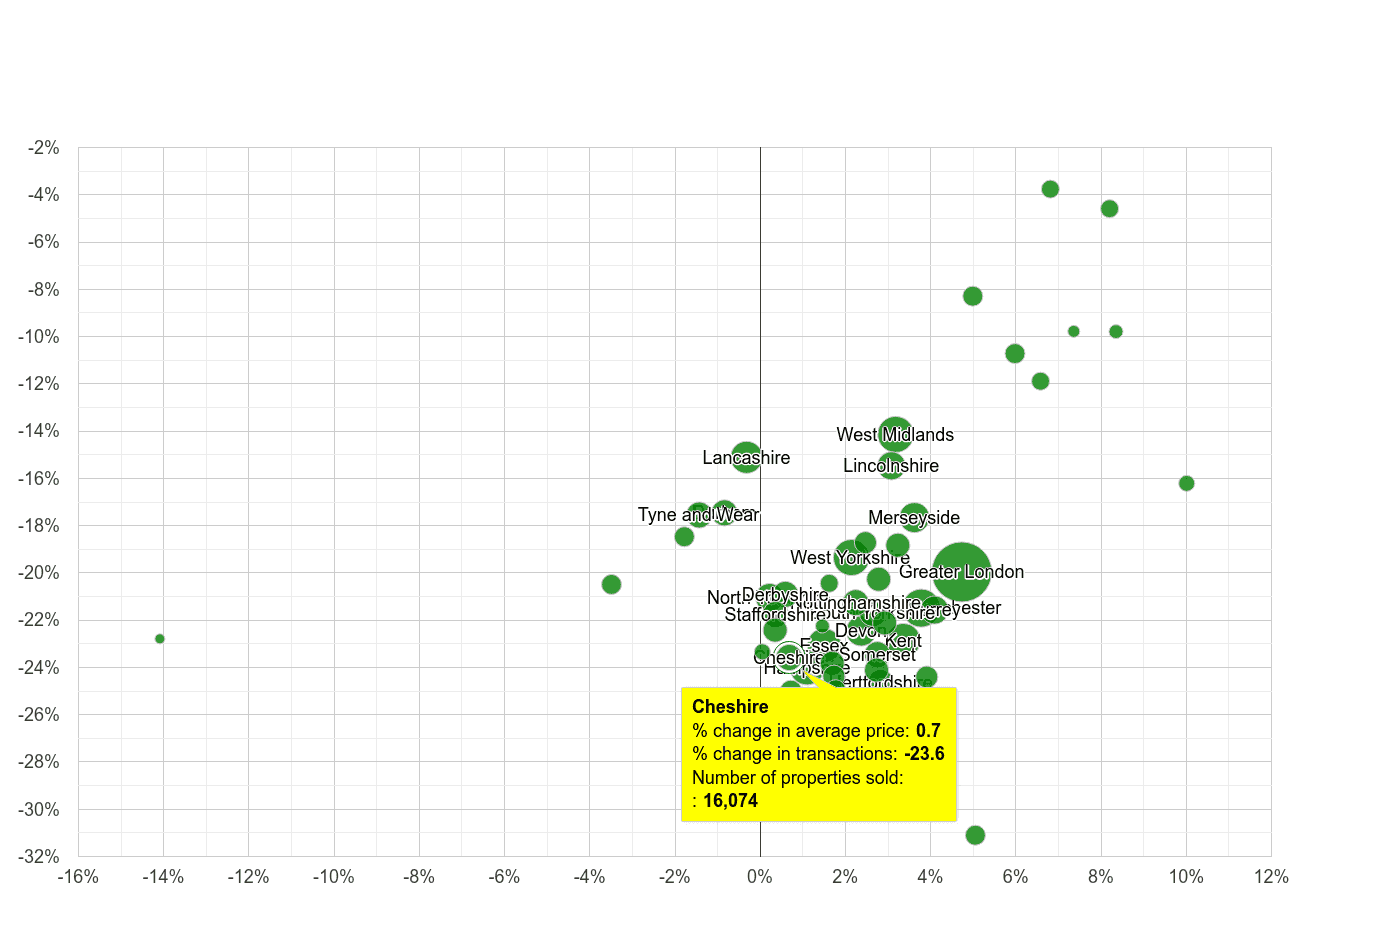 Cheshire property price and sales volume change relative to other counties